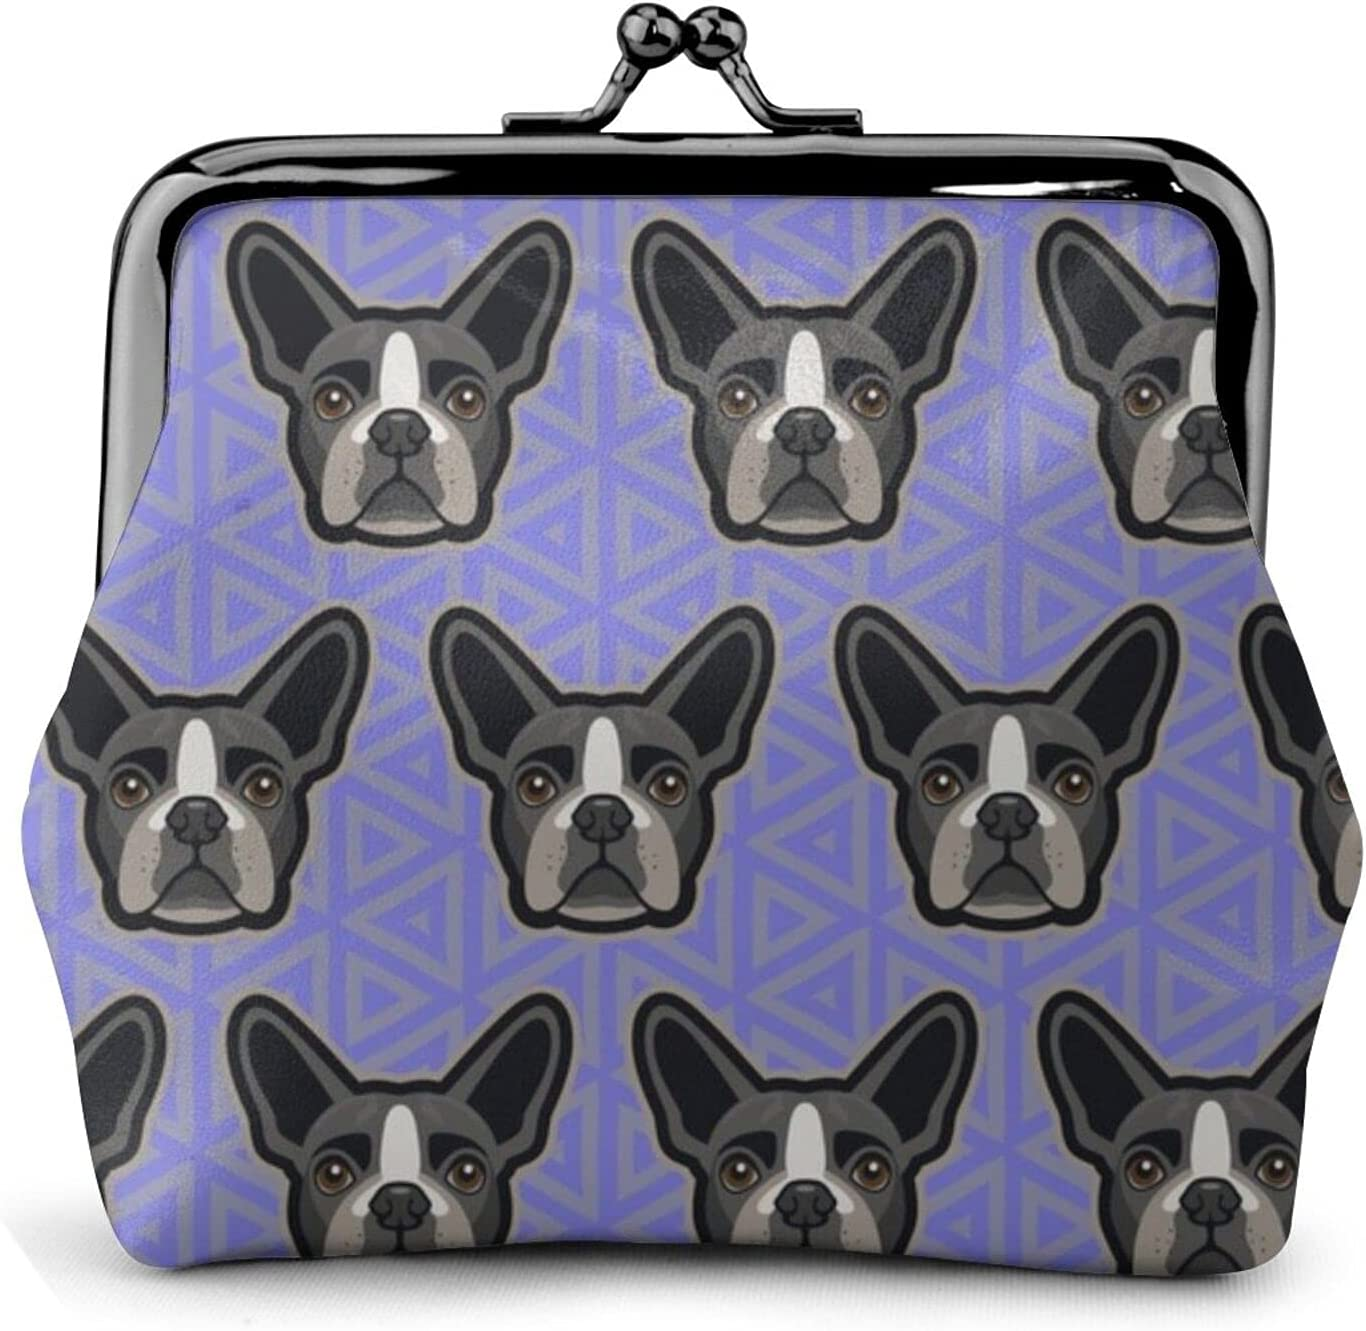 Boston Terrier Lavender 1016 Leather Coin Purse Kiss Lock Change Pouch Vintage Clasp Closure Buckle Wallet Small Women Gift